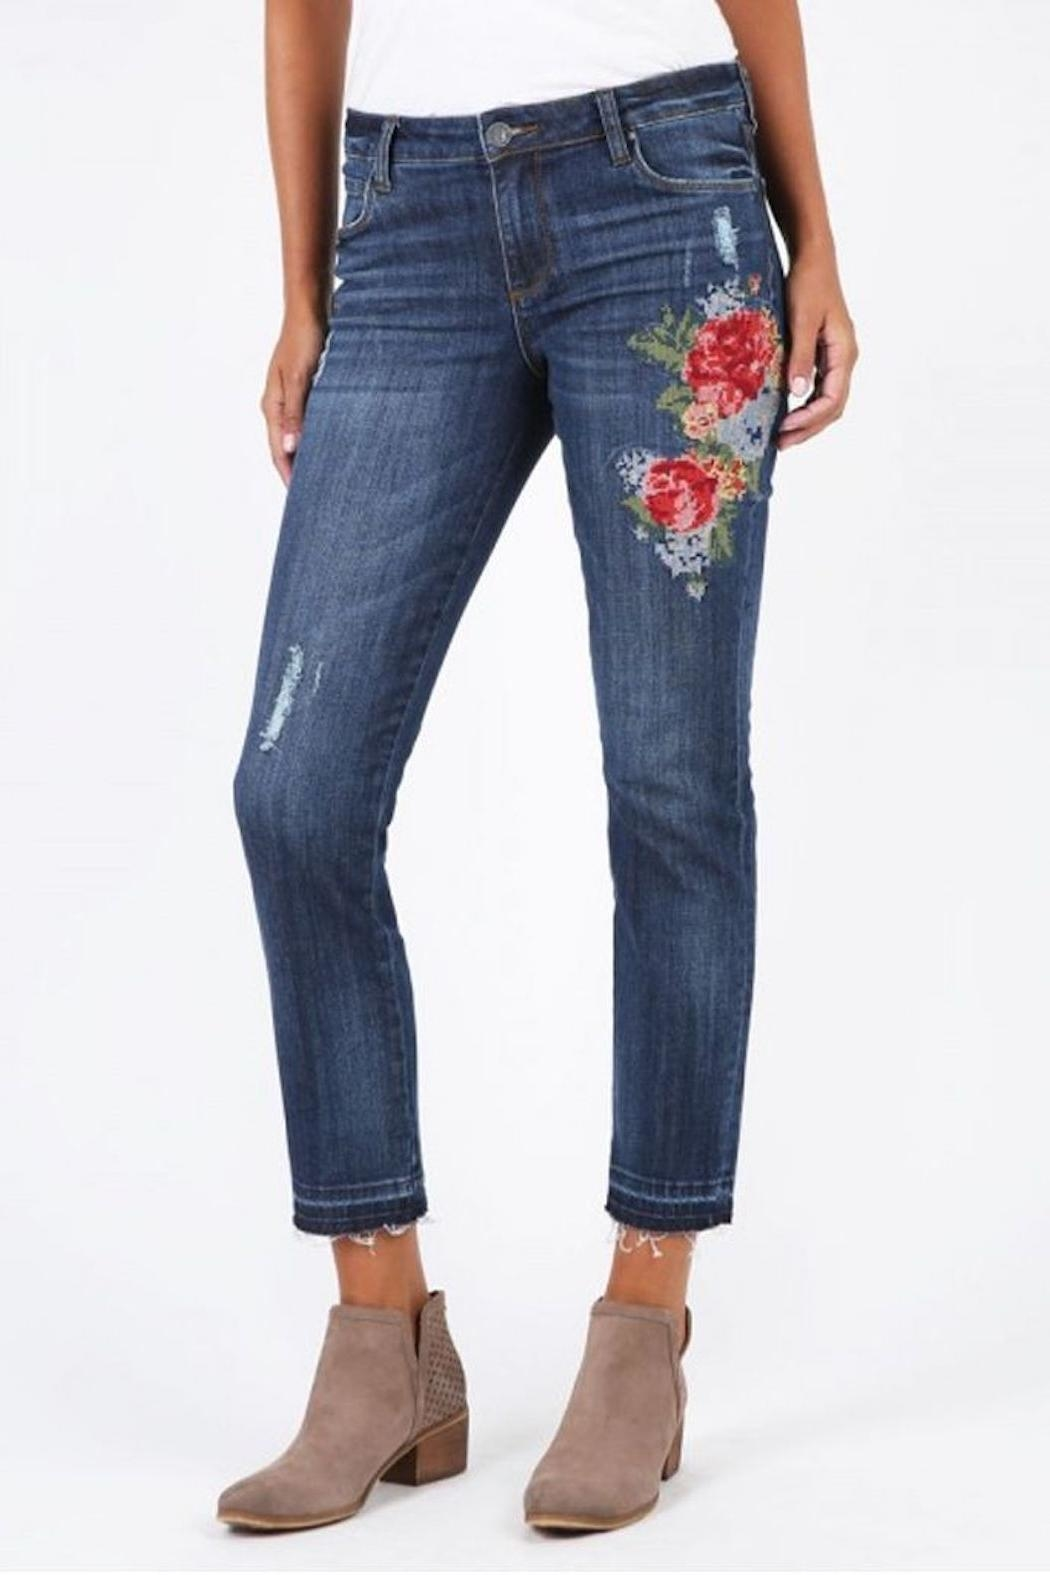 Kut from the Kloth Catherine Embroidered Jeans - Main Image